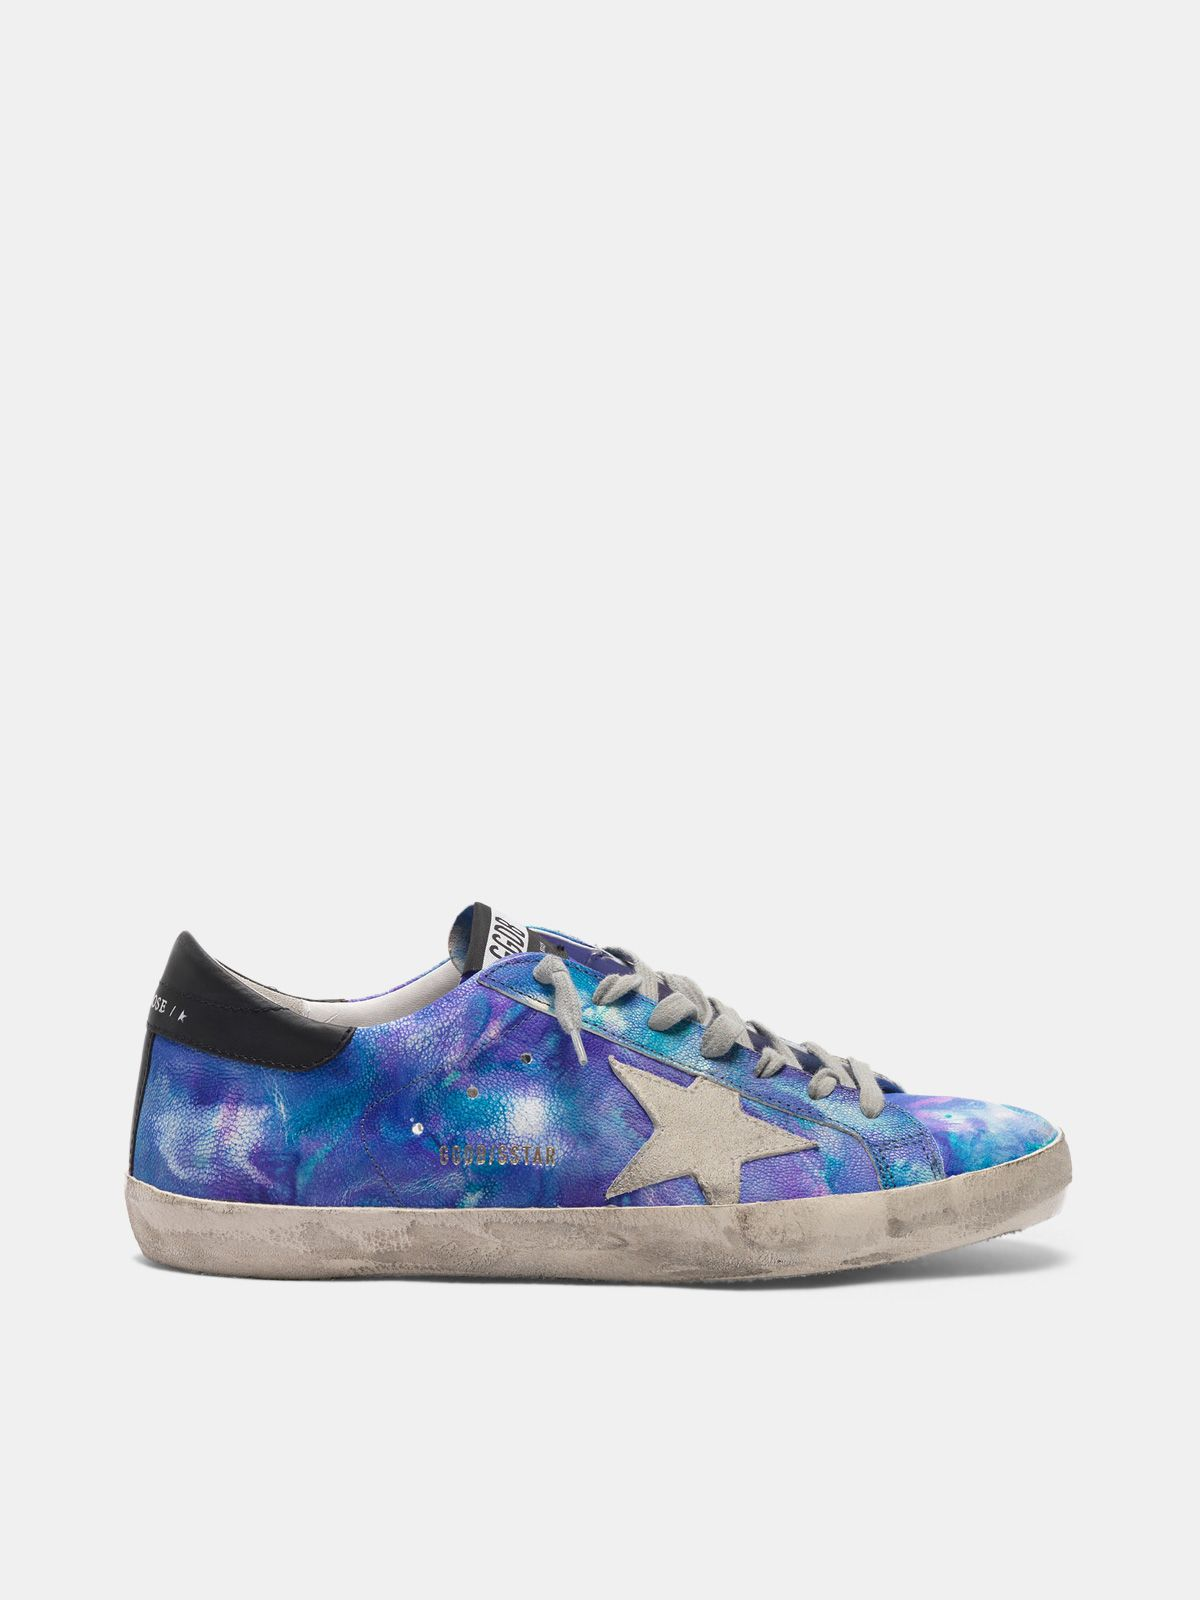 Super-Star sneakers in tie-dye leather